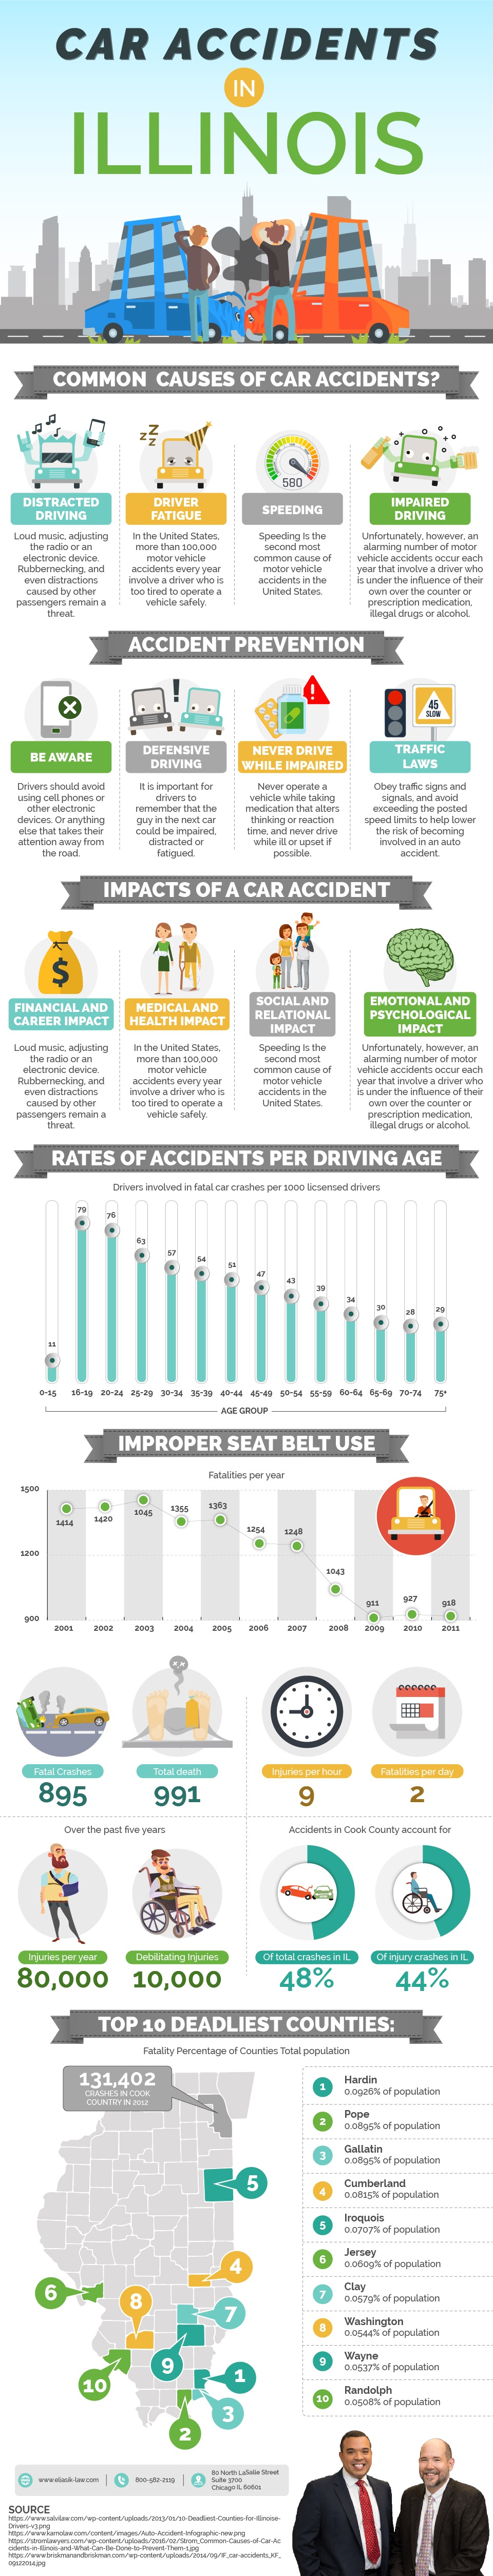 How Much Does It Cost To Hire An Car Accident Lawyer Chicago